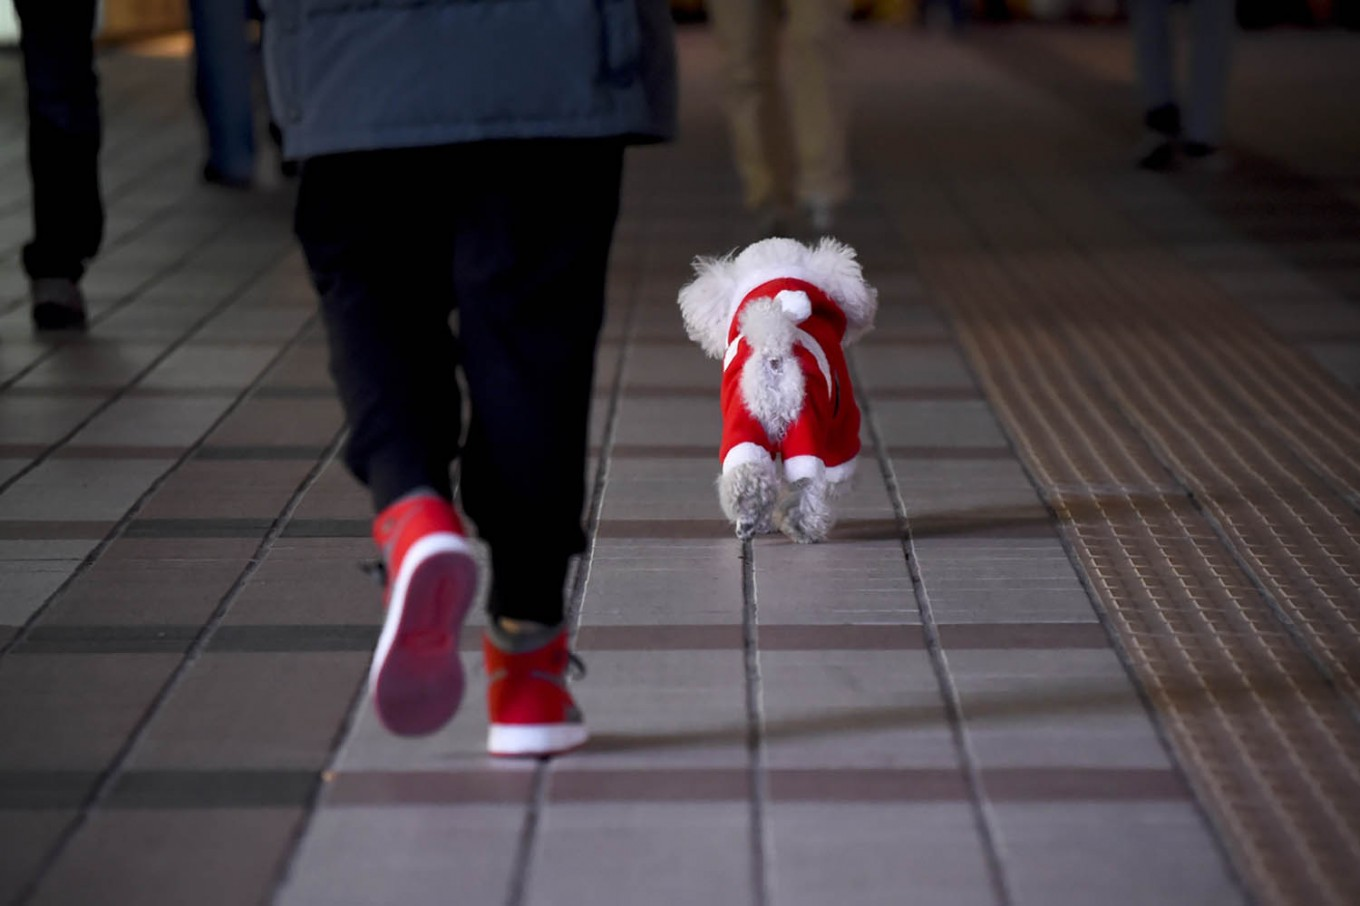 A dog dressed in a Christmas costume and its owner walk along a street in Beijing on December 24, 2017. AFP/Wang Zhao